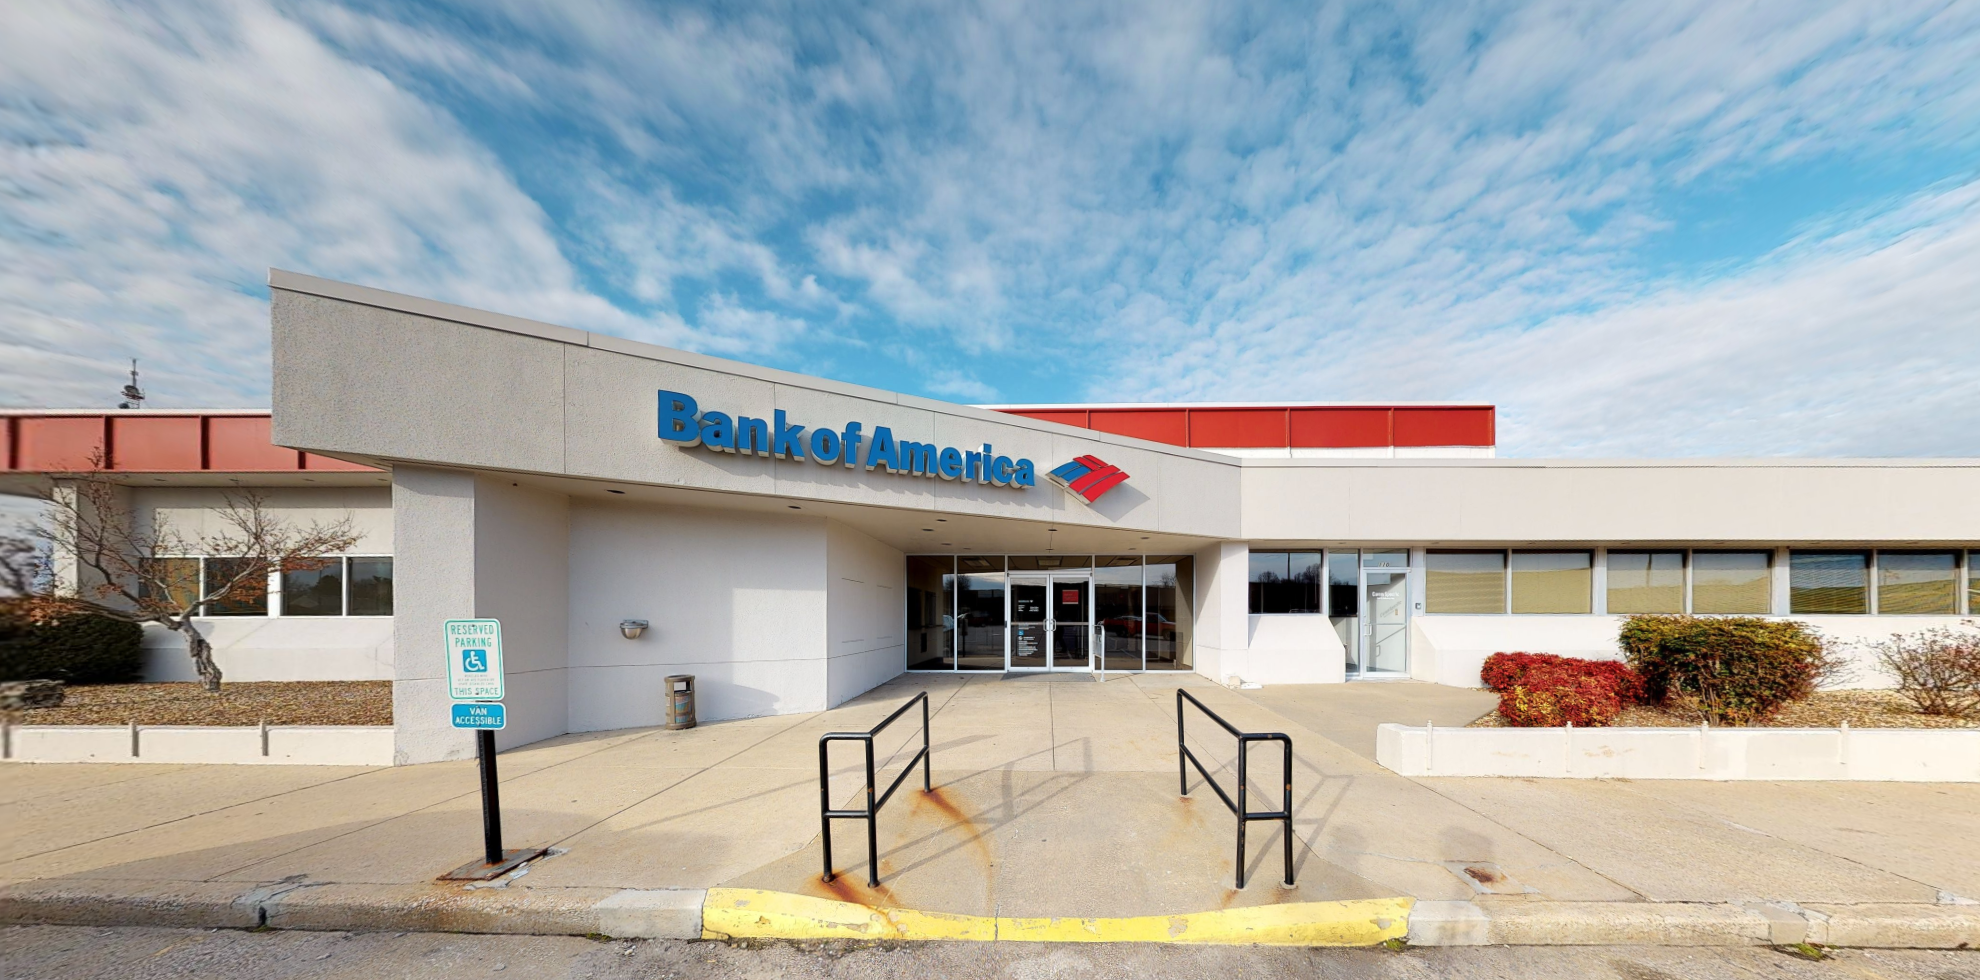 Bank of America financial center with drive-thru ATM | 710 W Sunshine St, Springfield, MO 65807